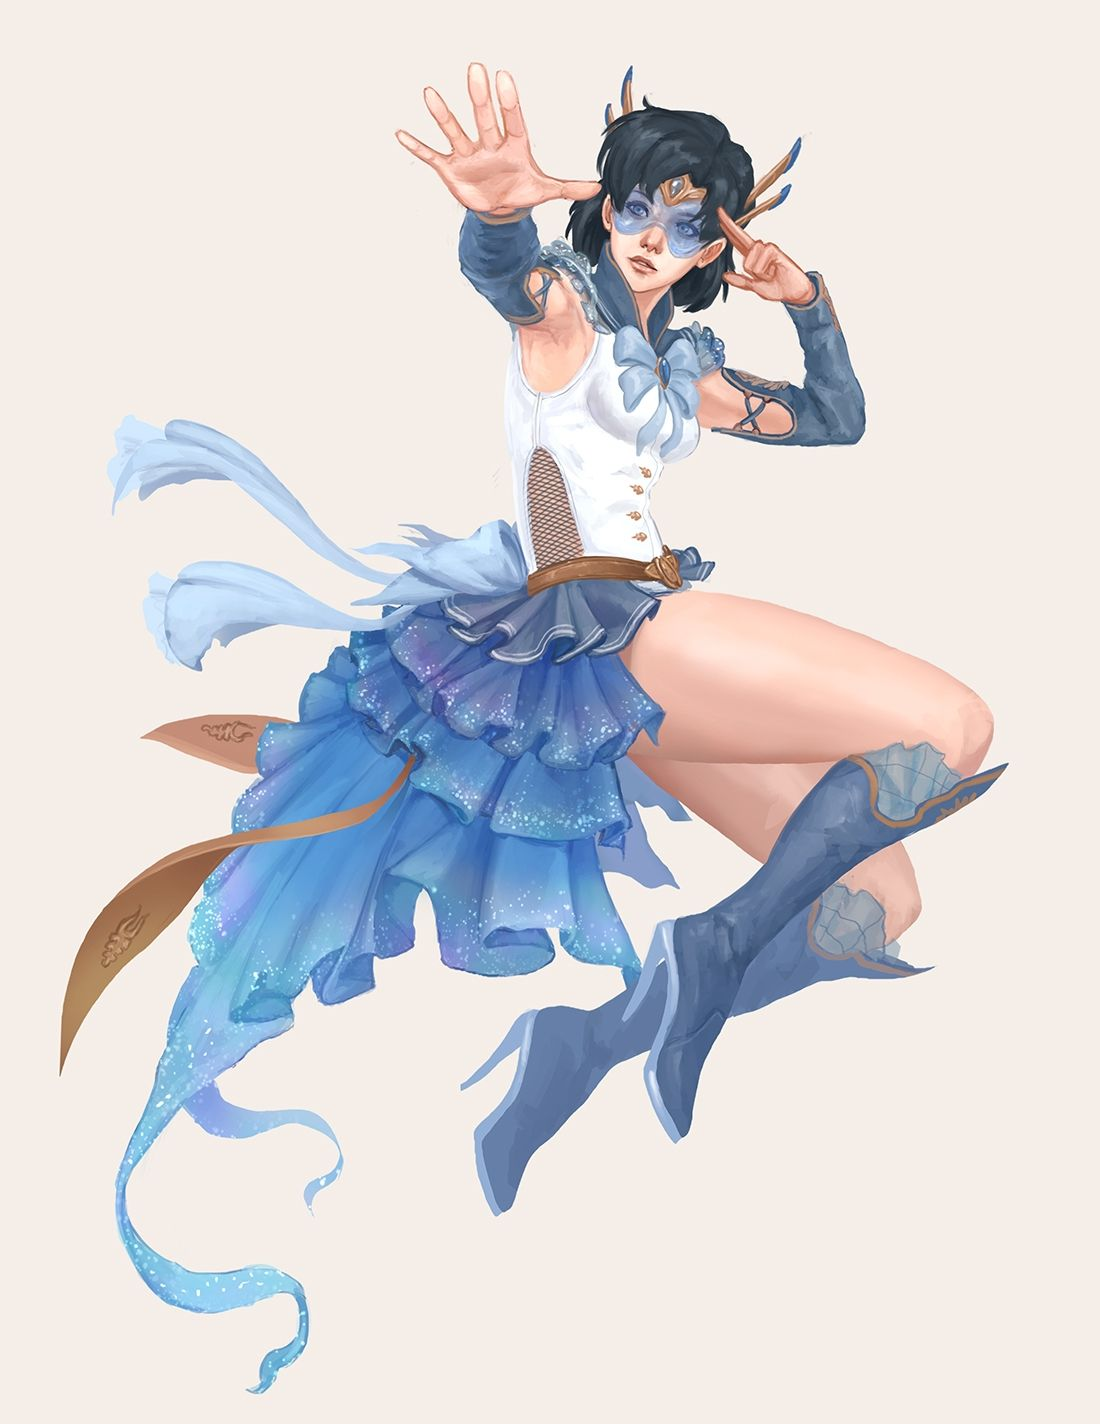 Pin by Tanya mccuistion on Geek   Sailor mercury, Sailor